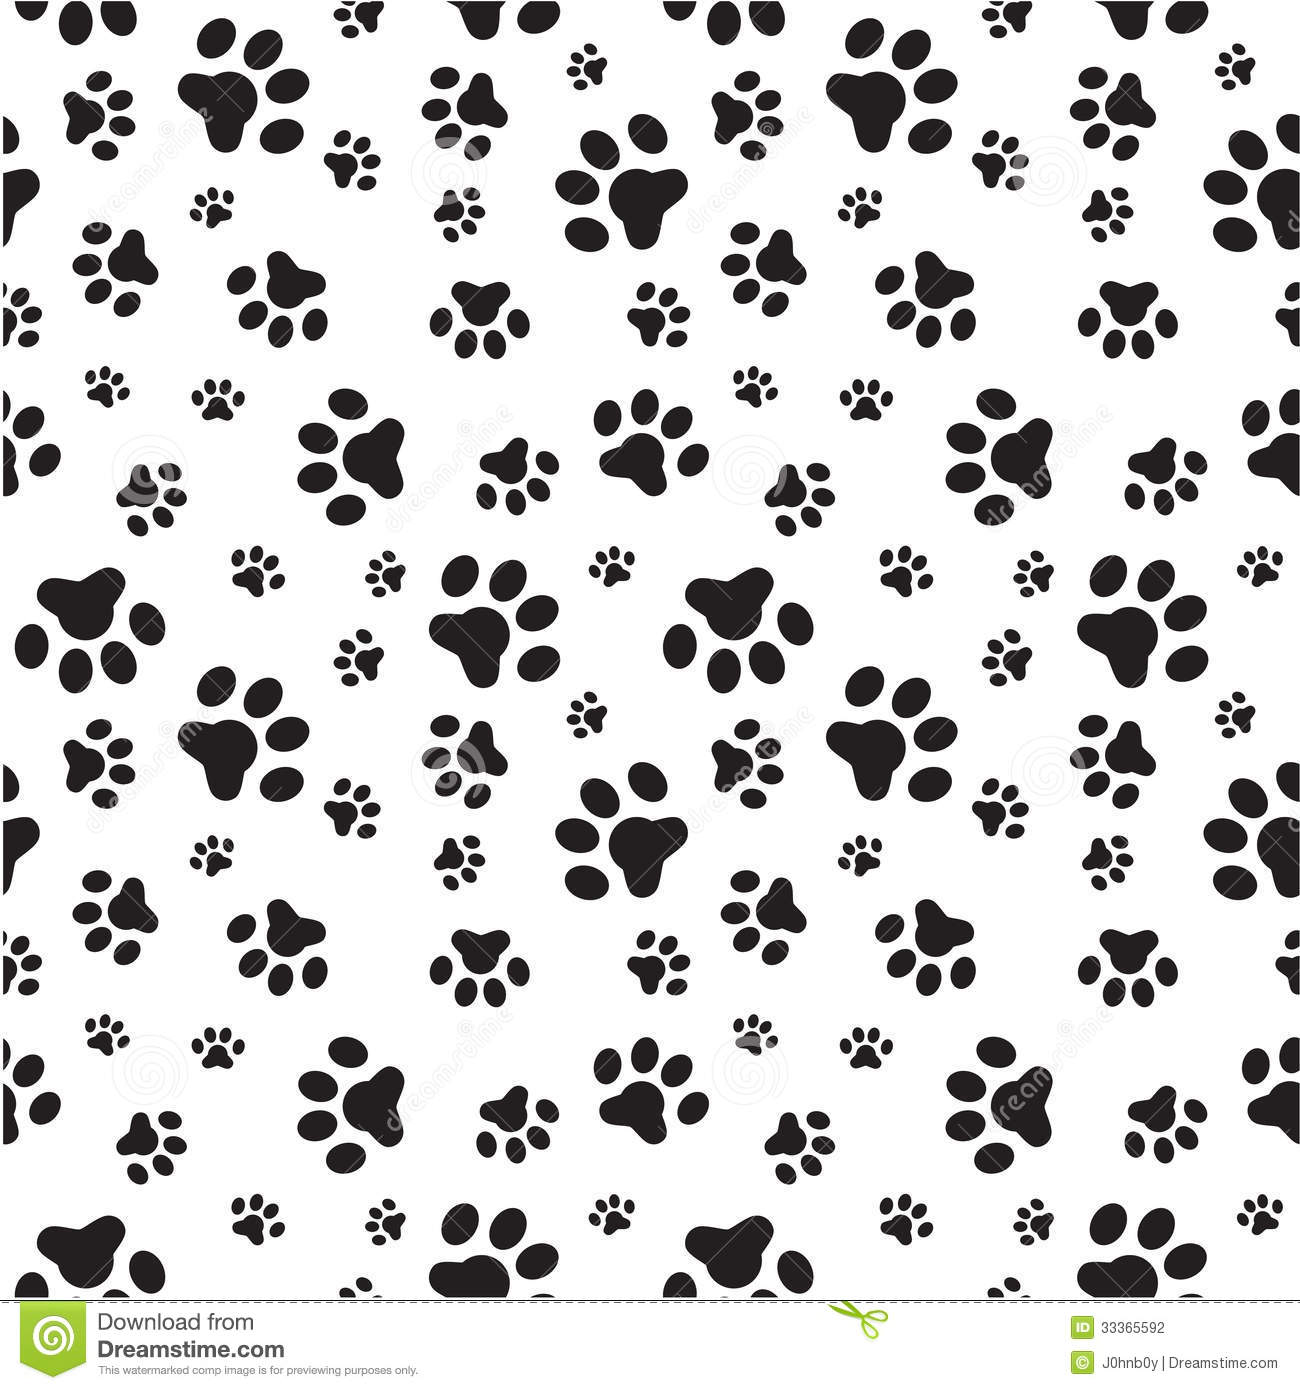 related dog paws clip art dog paw prints dog bones wallpaper dog ...